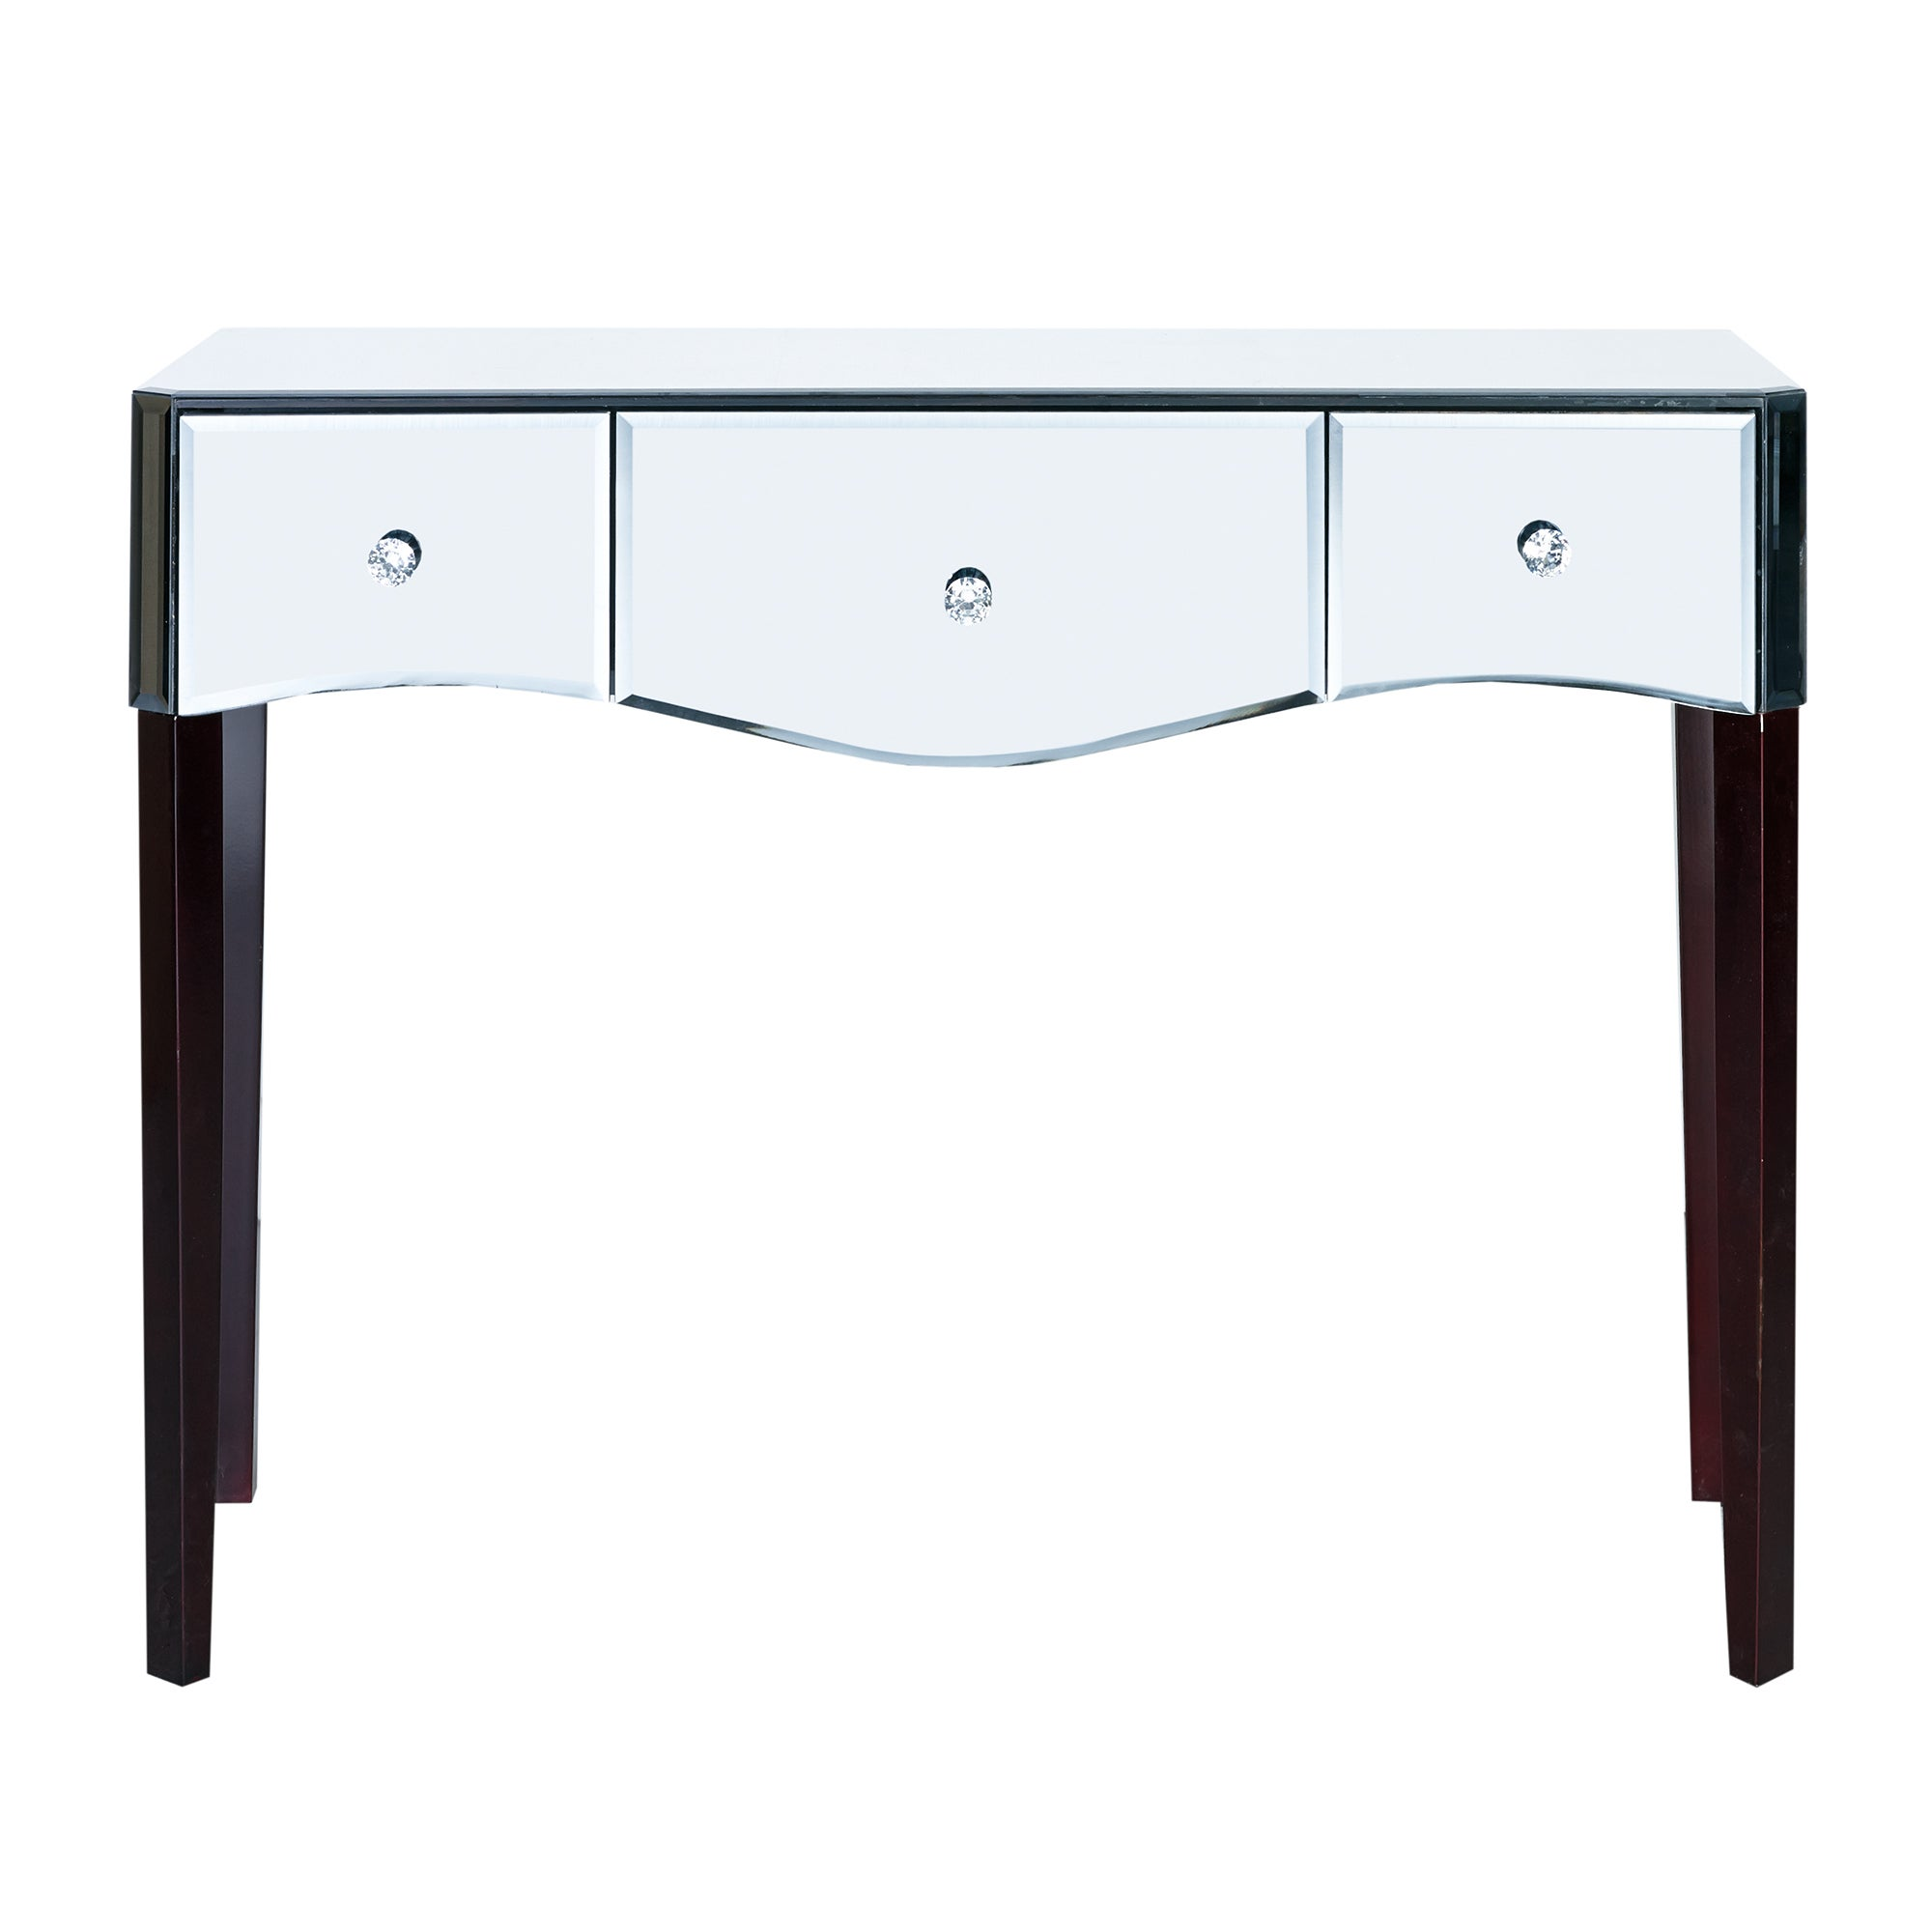 Photo of Viola mirrored dressing table clear